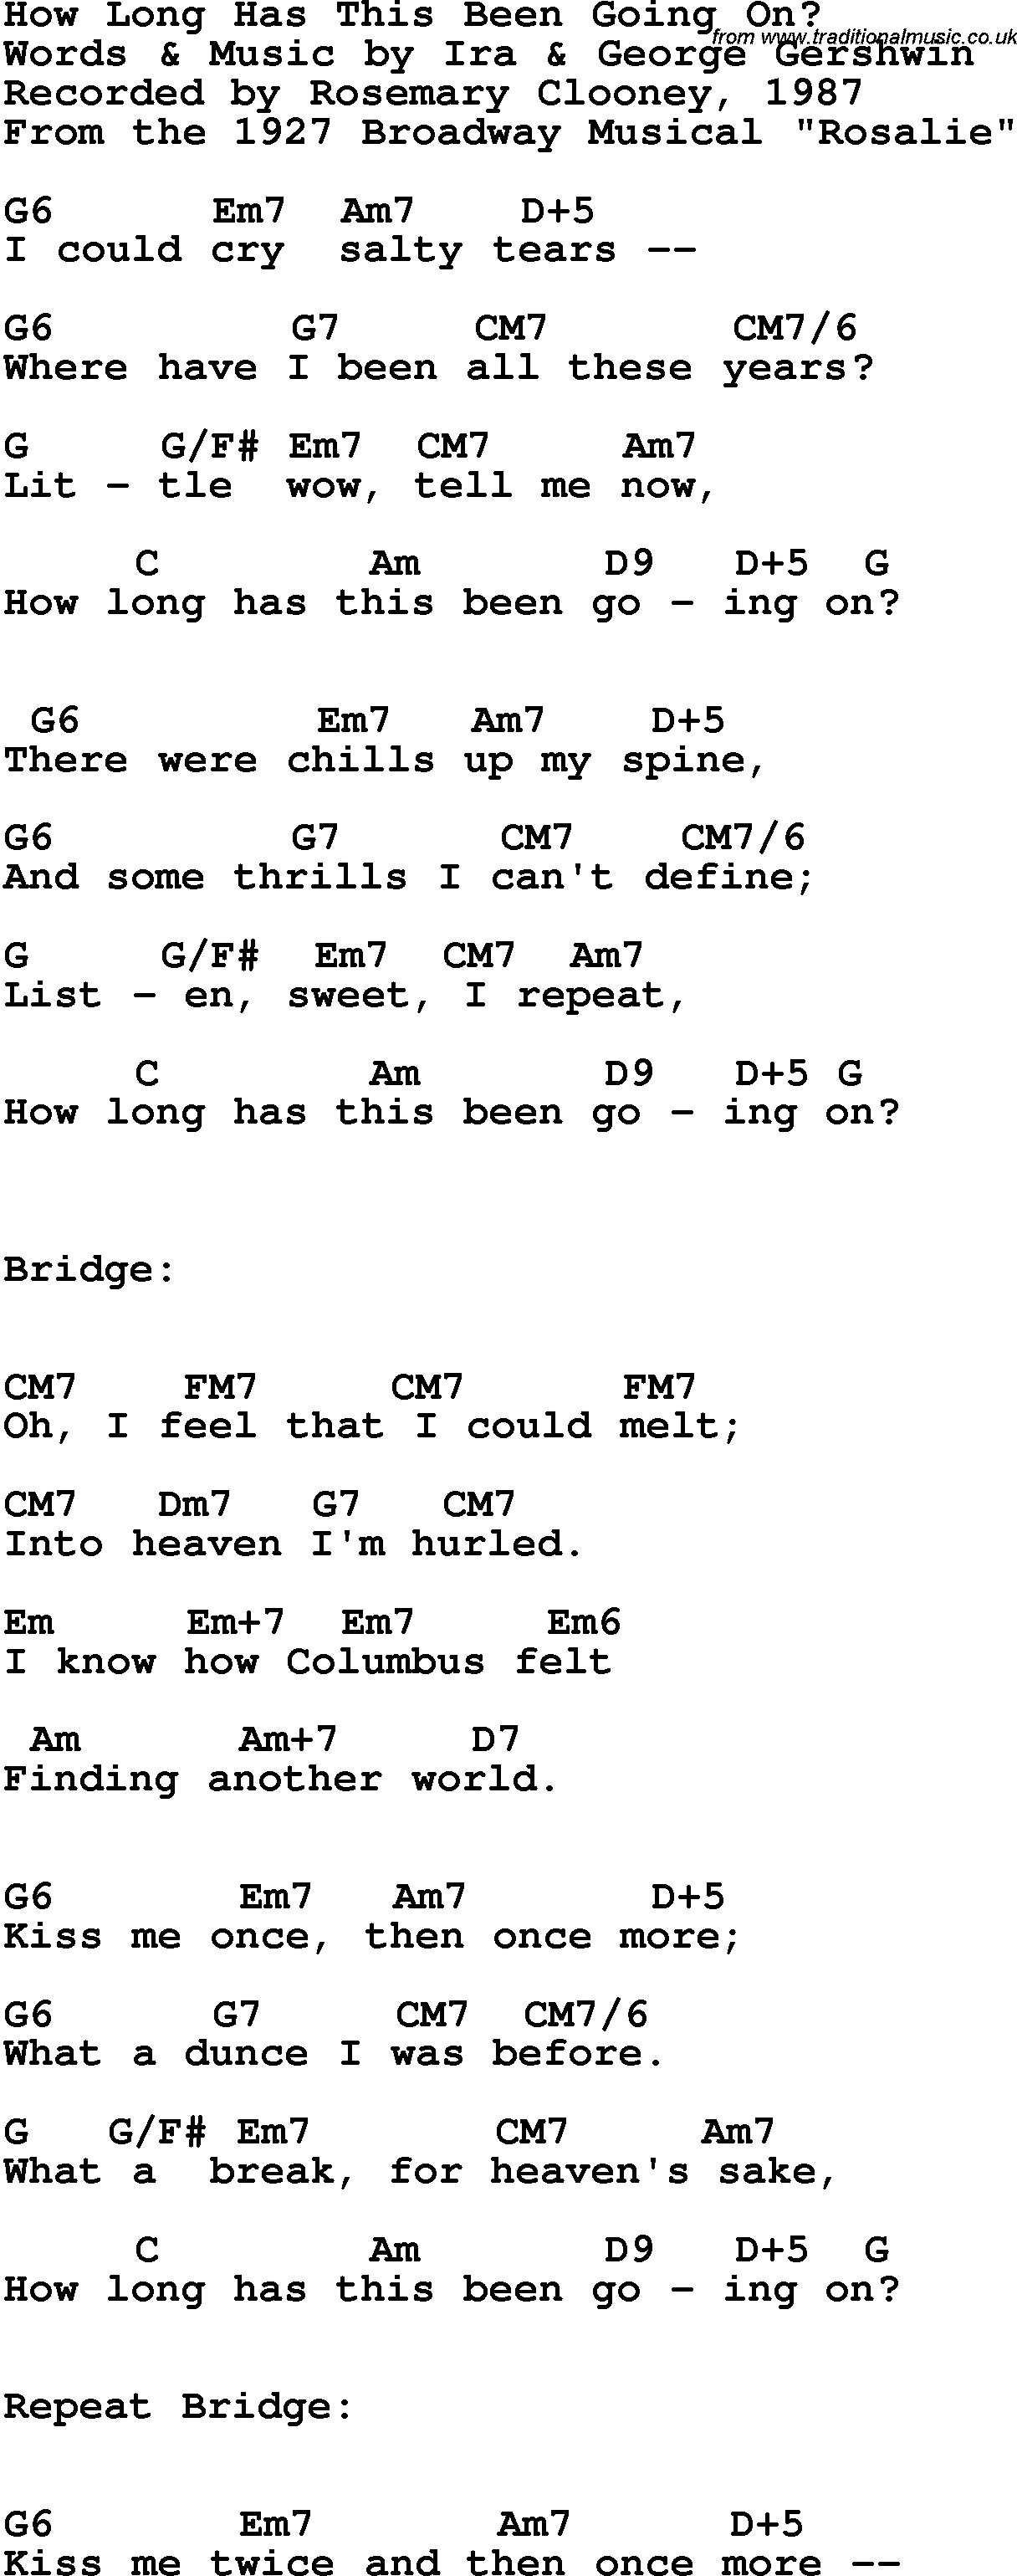 Song lyrics with guitar chords for How Long Has This Been